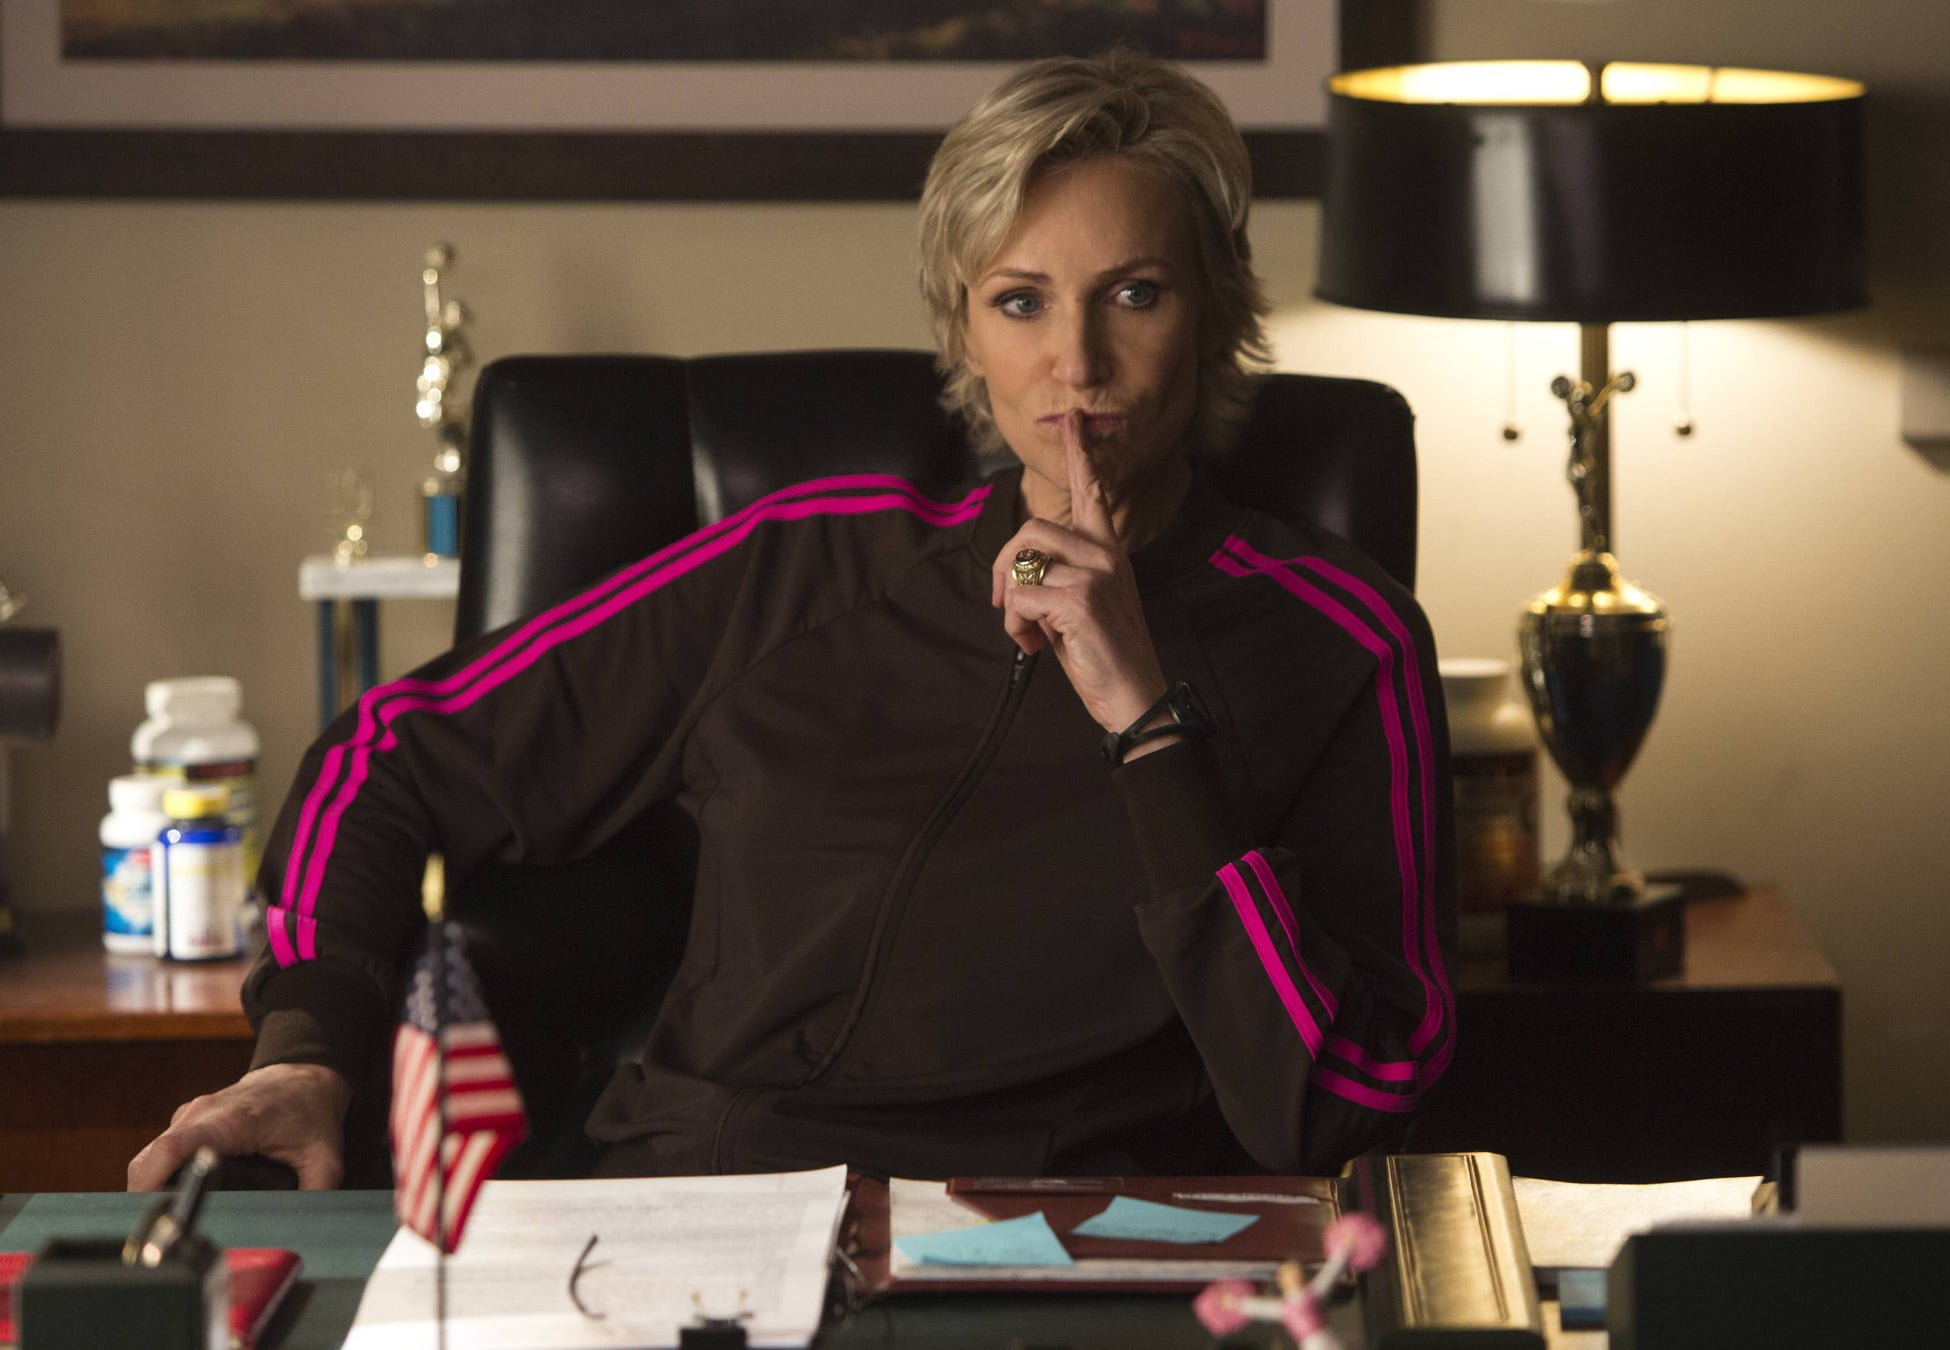 Sue (Jane Lynch) is likely up to no good.